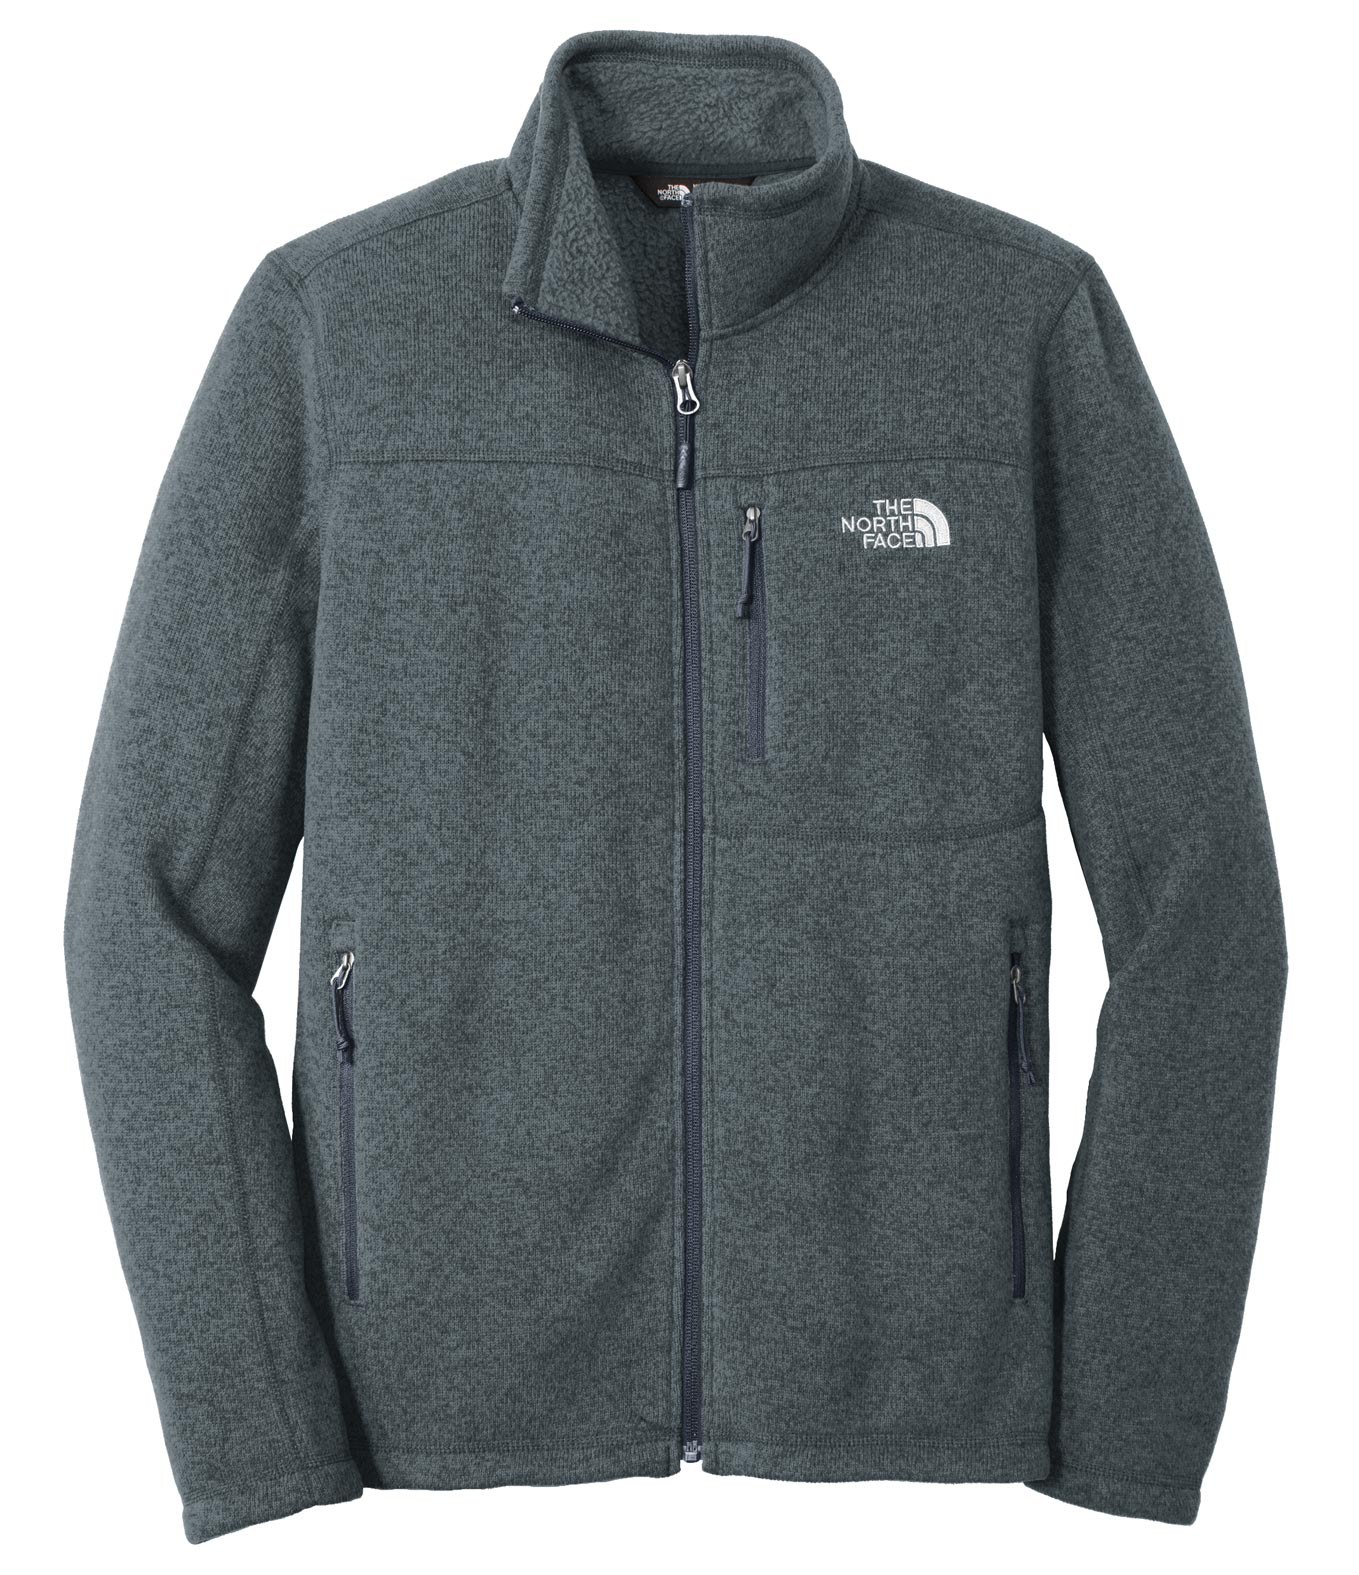 The North Face® Mens Sweater Fleece Jacket